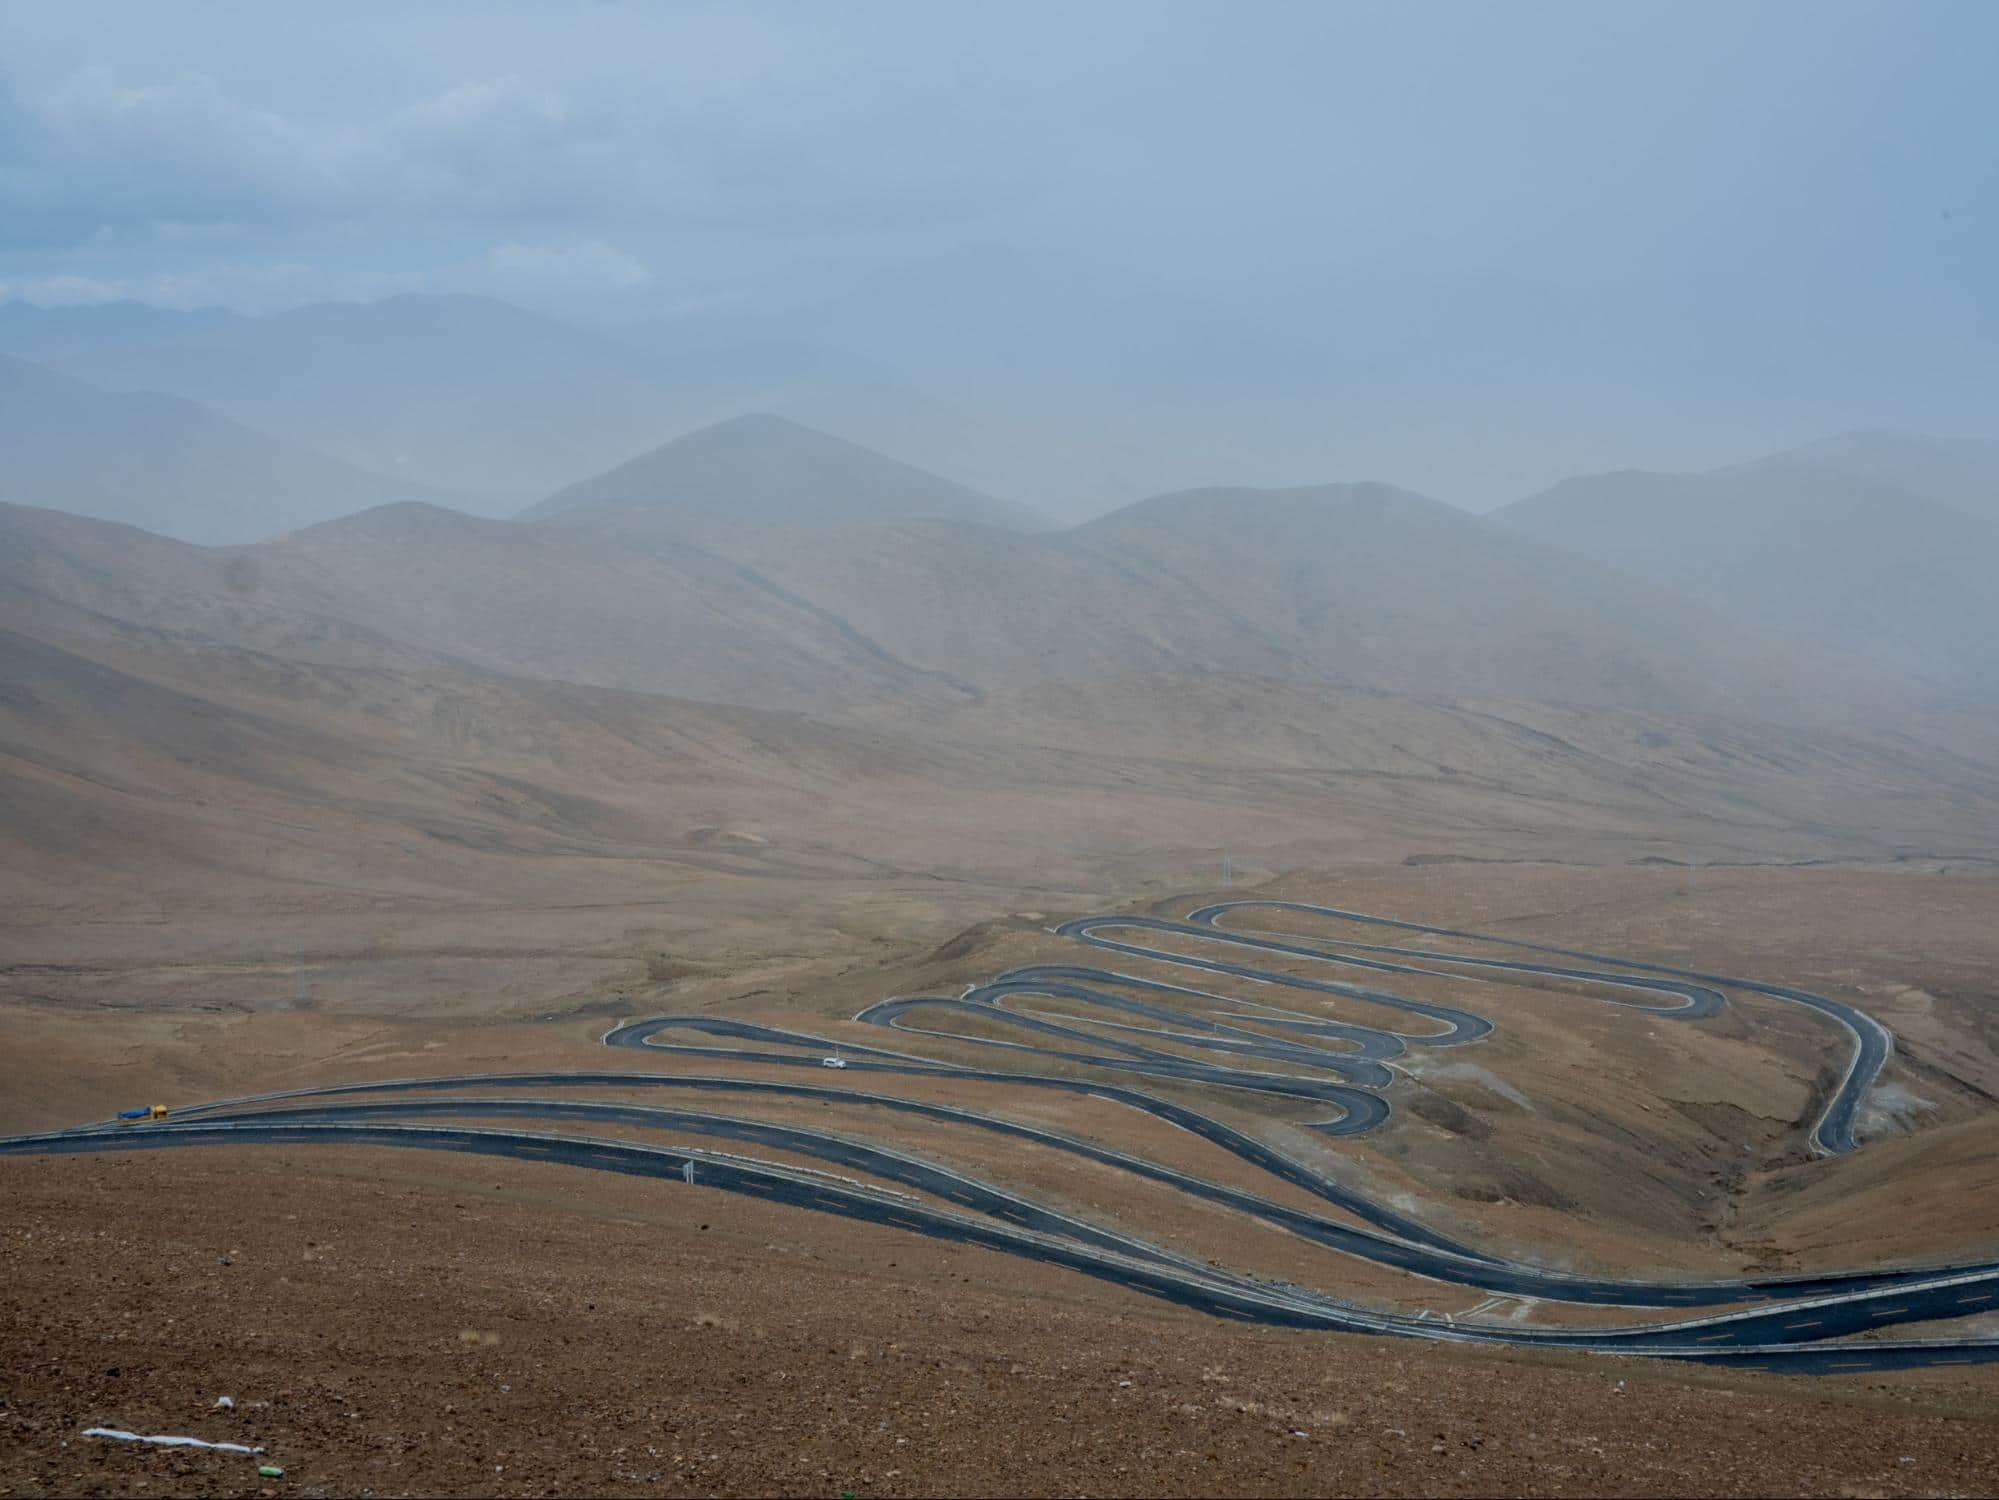 Winding road on the way to Everest base camp